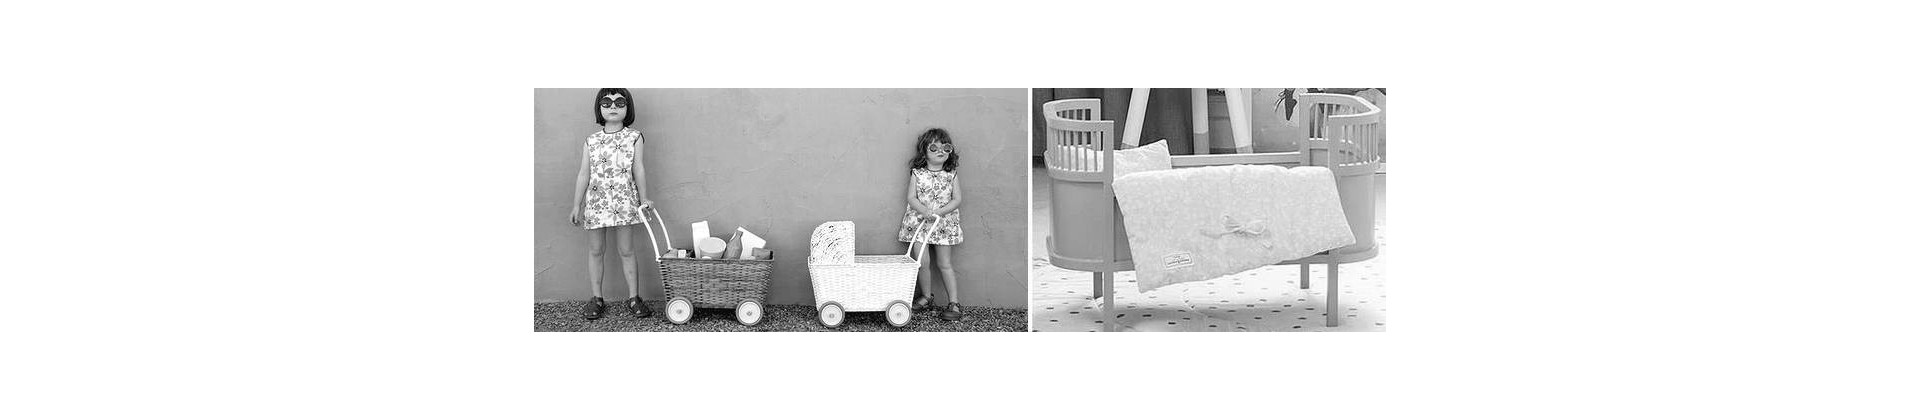 Doll's bed & doll bedding - toys from France